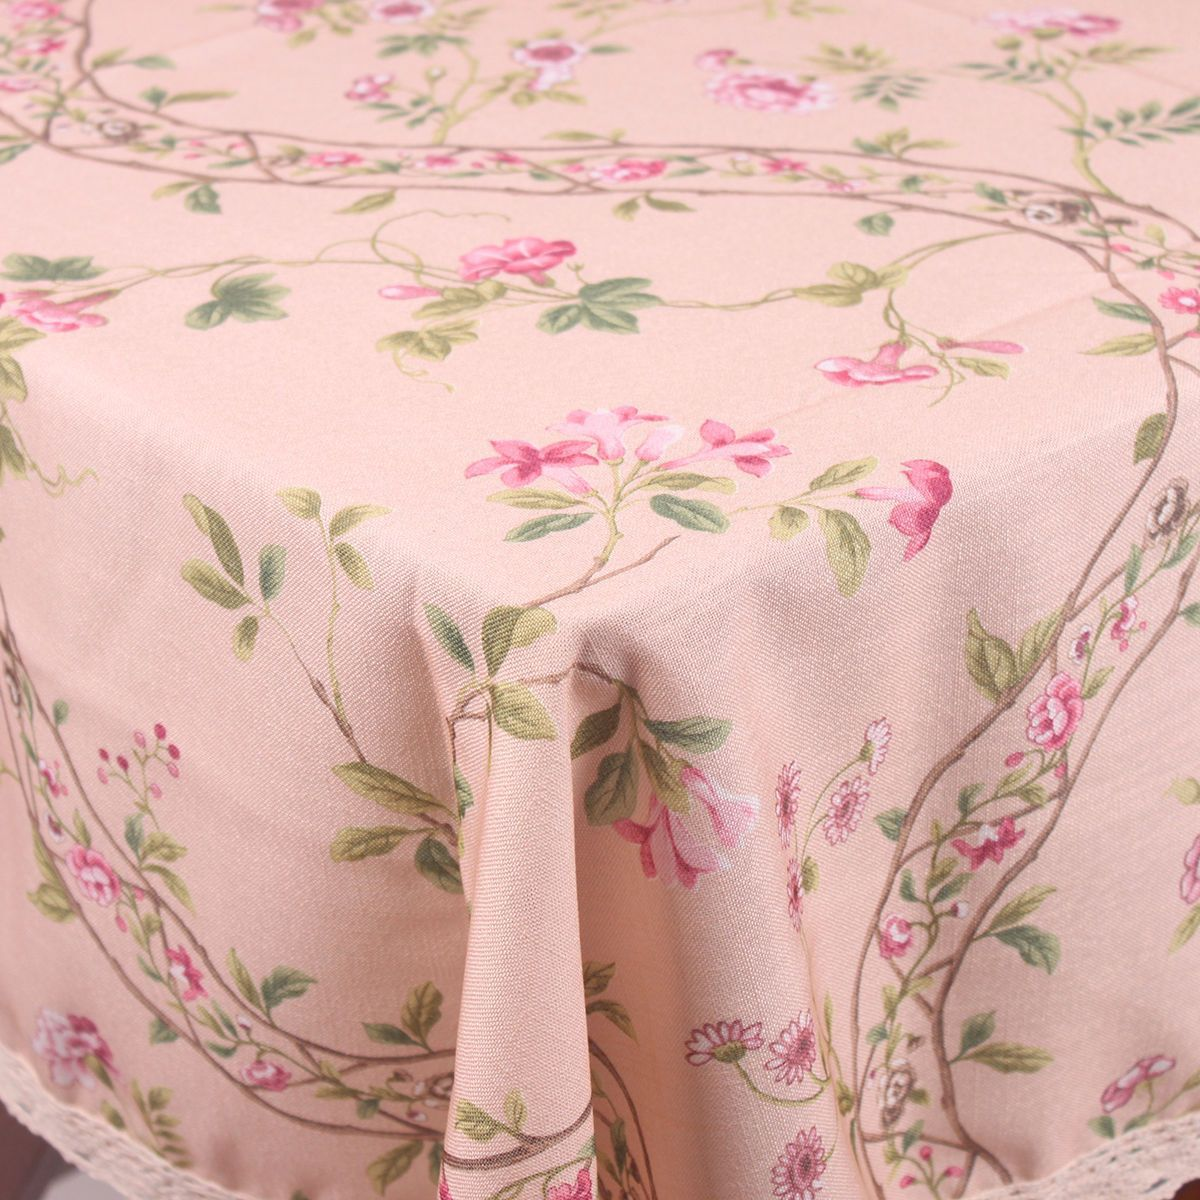 Pink Countryside Flowers Rattan Cotton Blend Lace Table Cloth Covers Home Decor